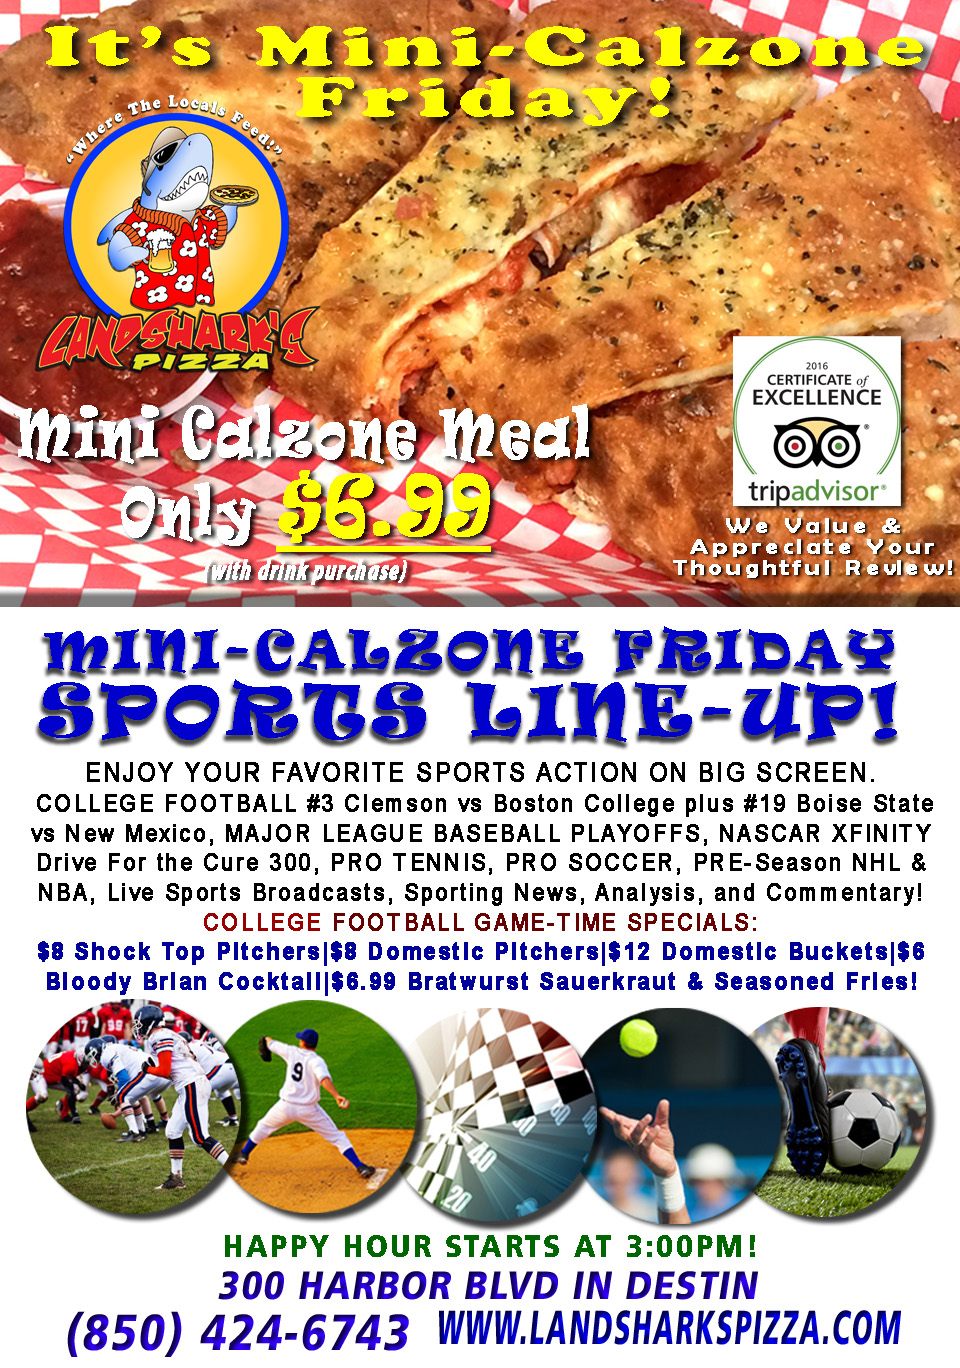 best-calzones-in-destin-fl-at-landsharks-with-college-football-10-06-16a